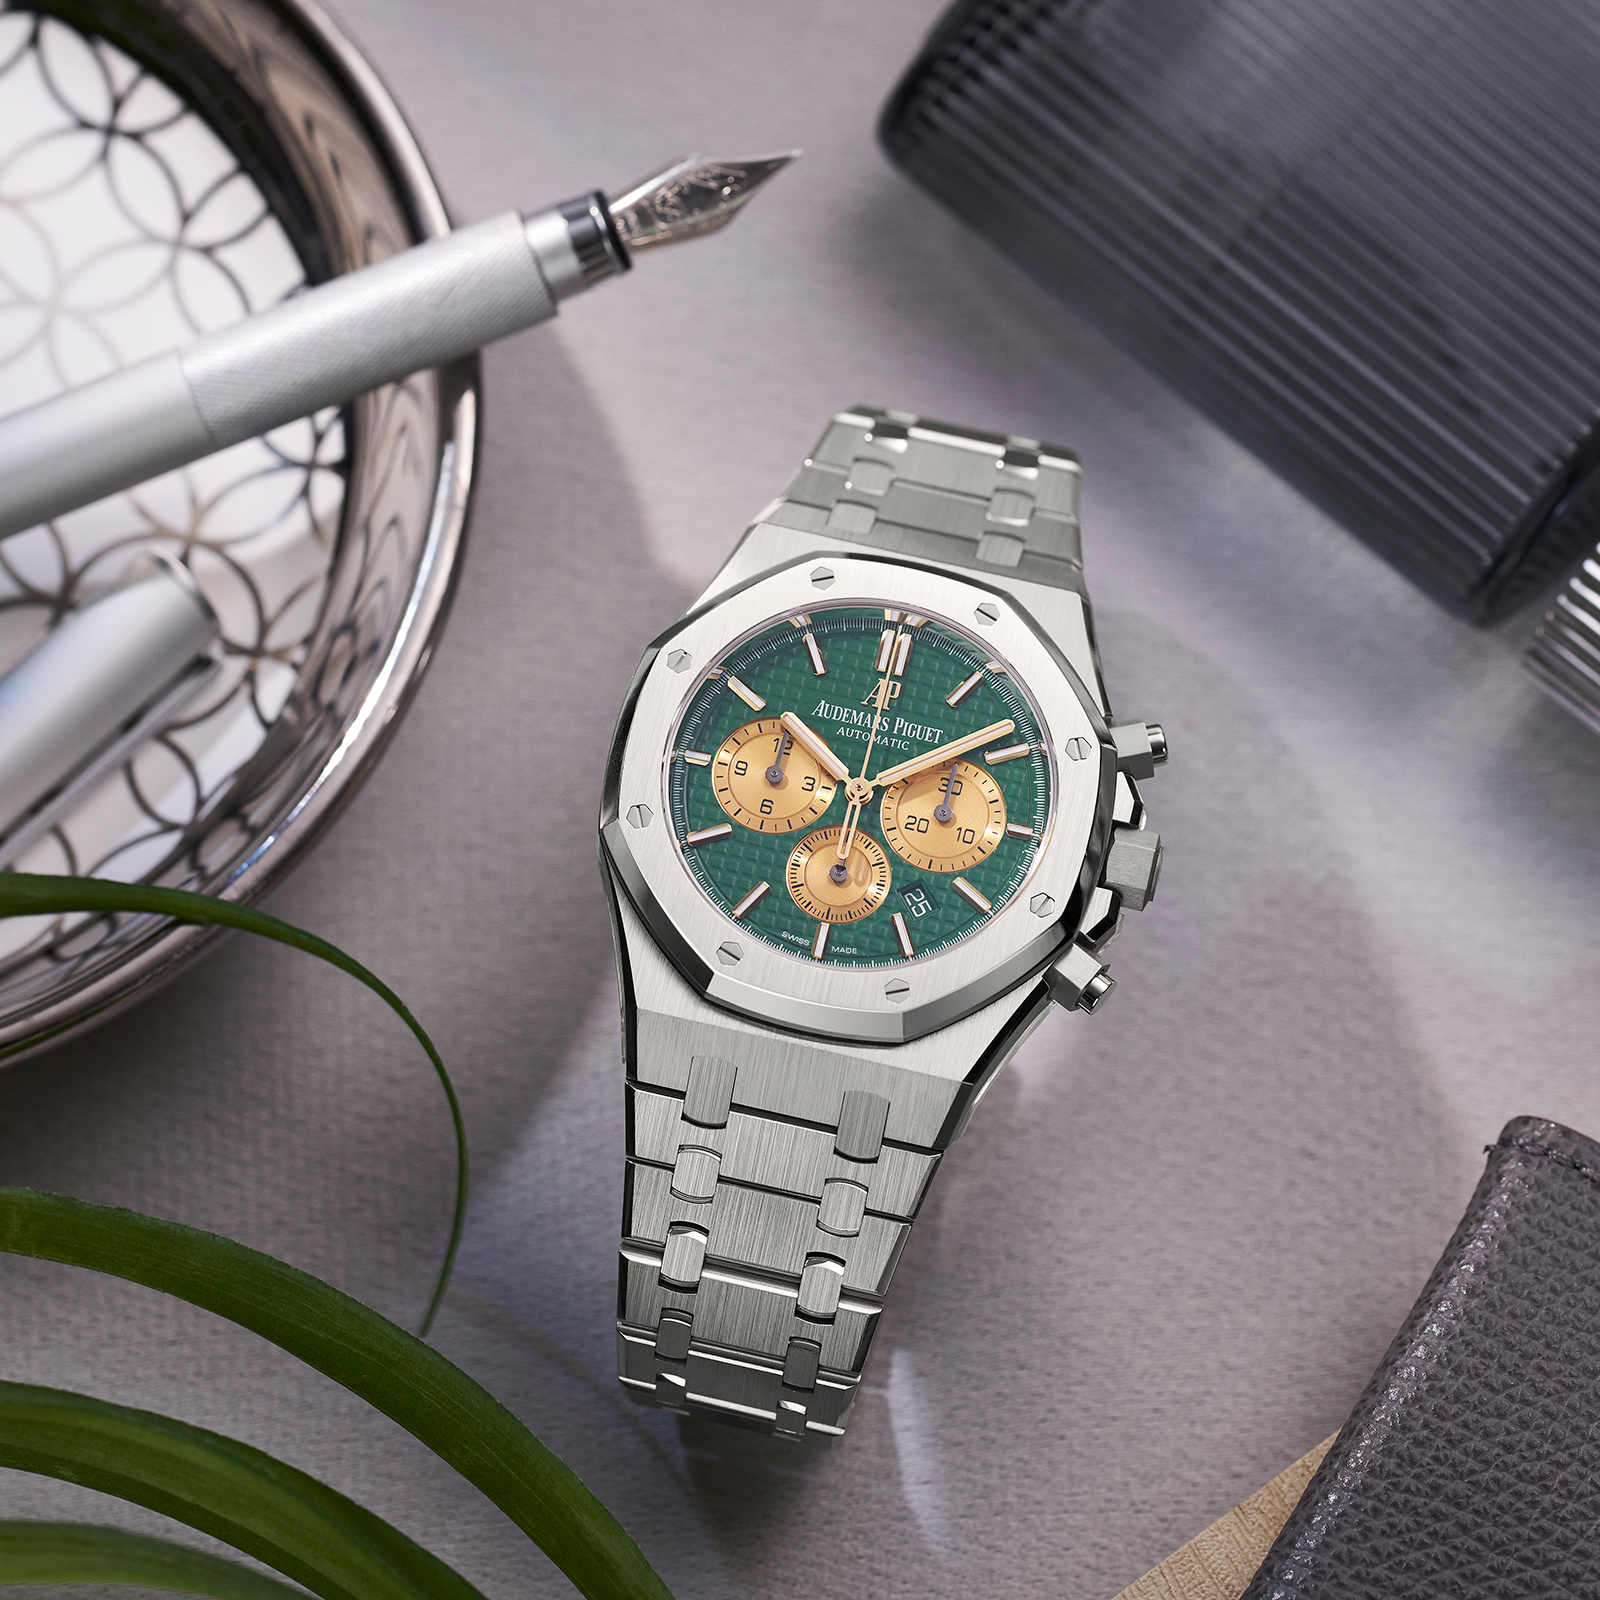 Audemars Piguet Royal Oak Self-winding Chrongraph The Hour Glass 2